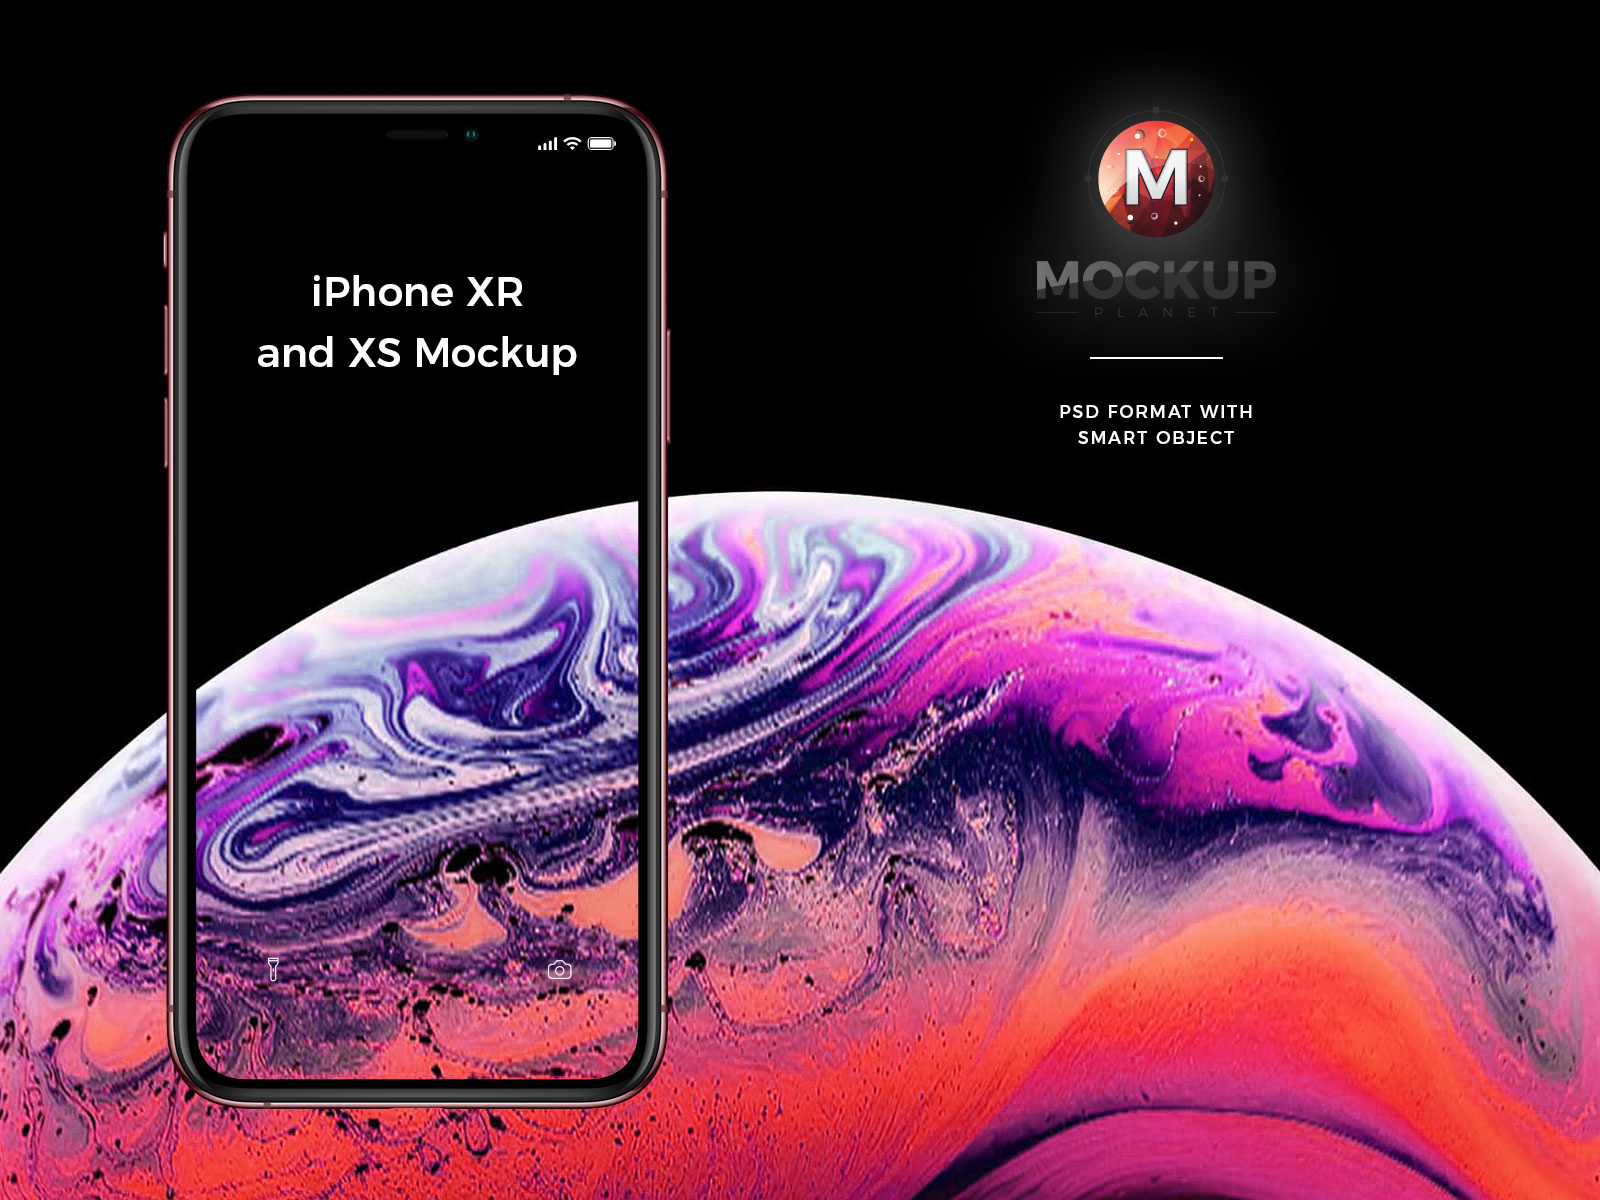 Free-Apple-New-iPhone-Xr-and-iPhone-Xs-Mockup-PSD-2018